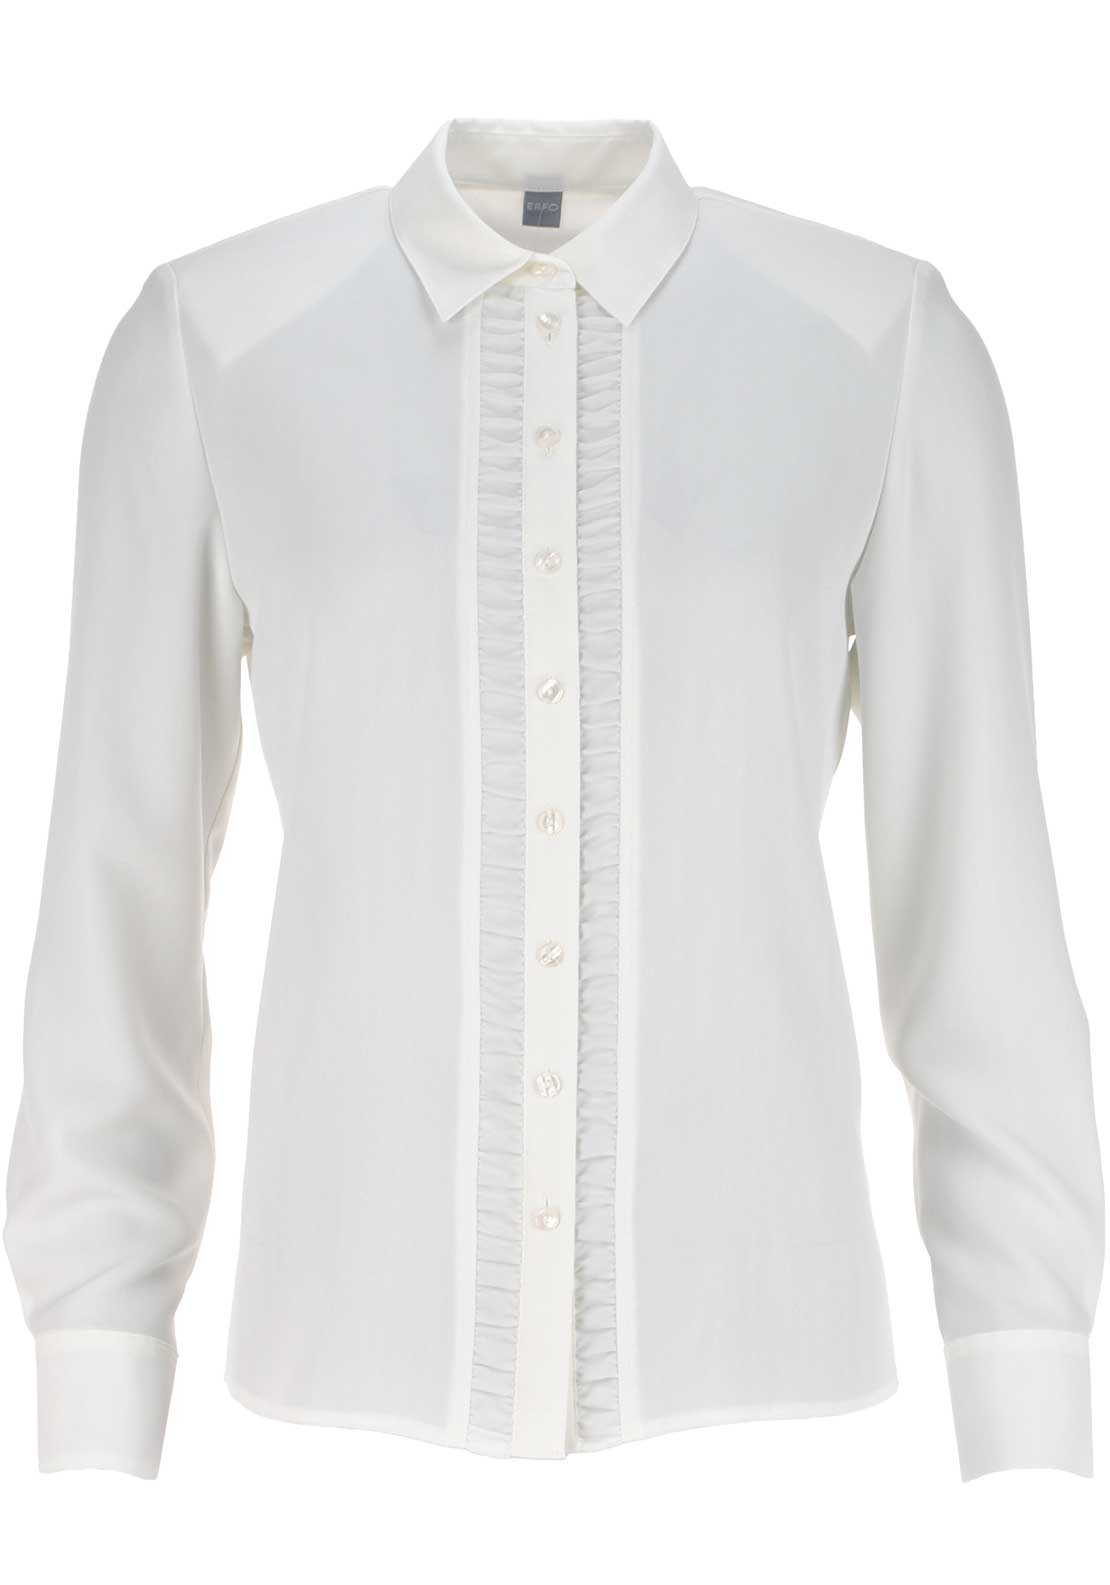 ERFO Ruffle Long Sleeve Blouse, Cream